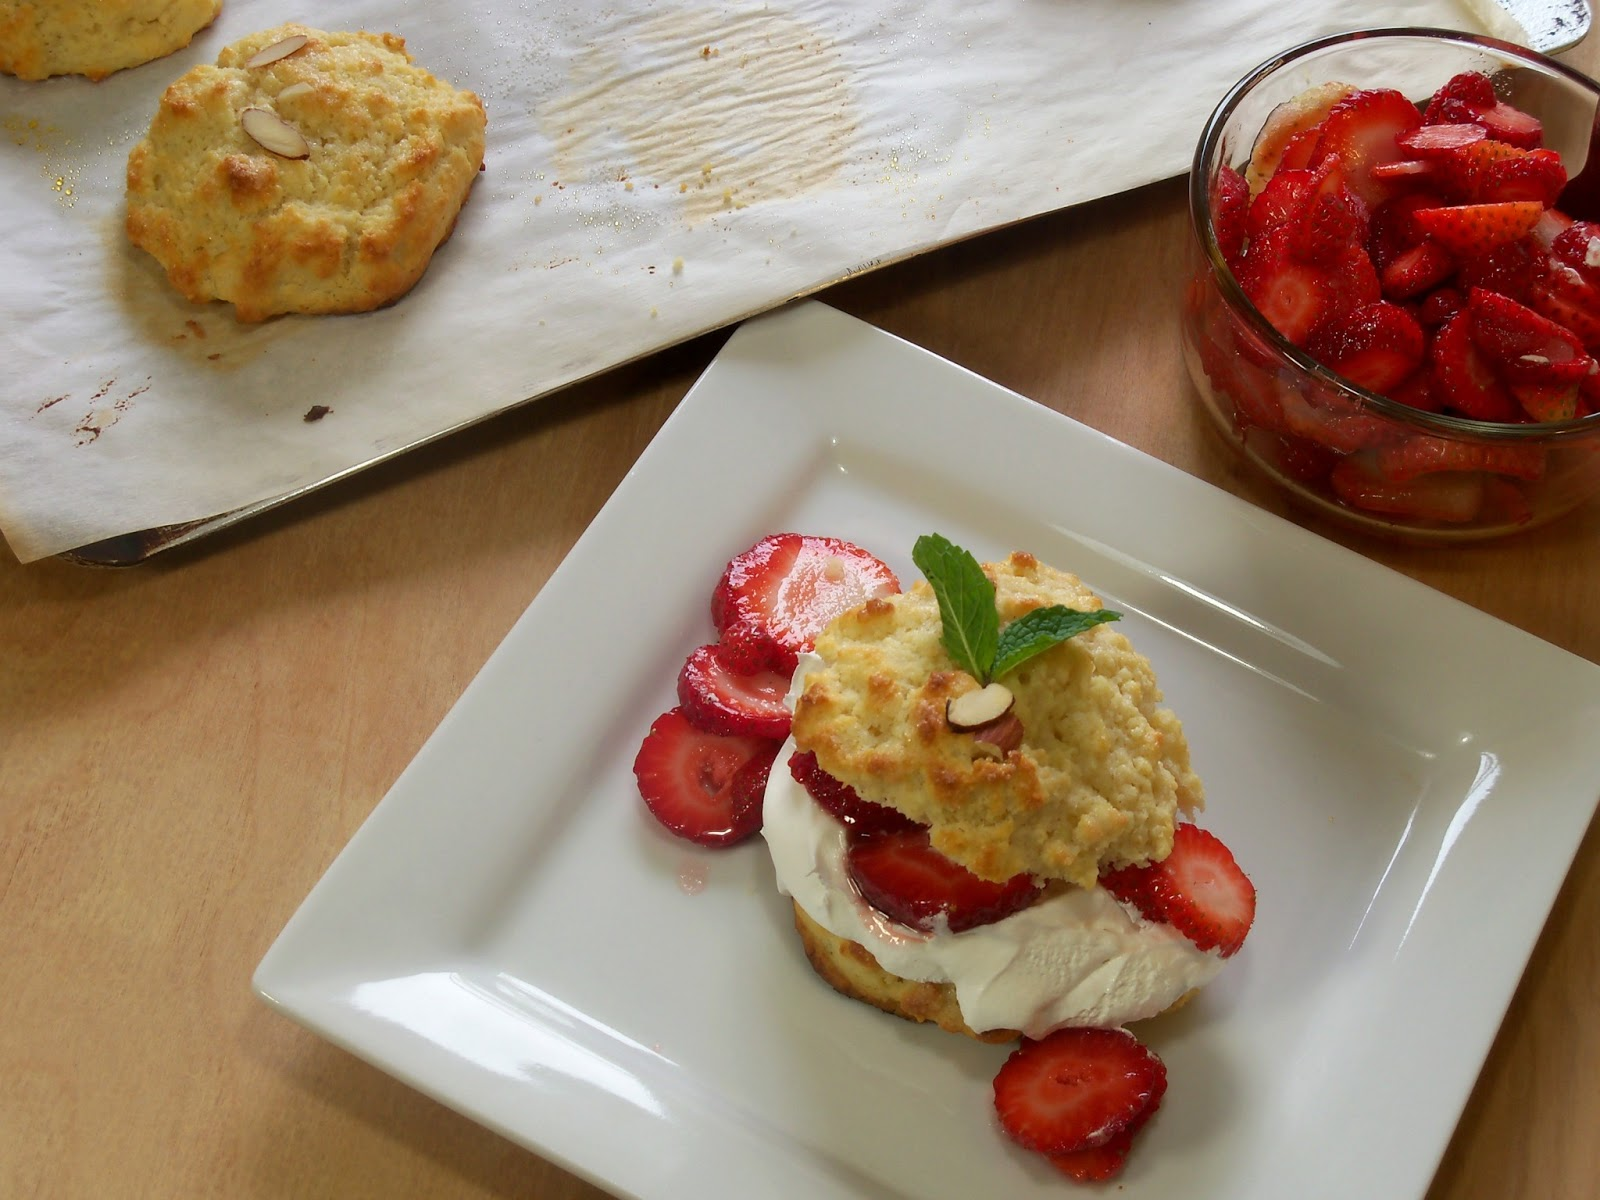 The Style Dossier: Almond Strawberry Shortcakes